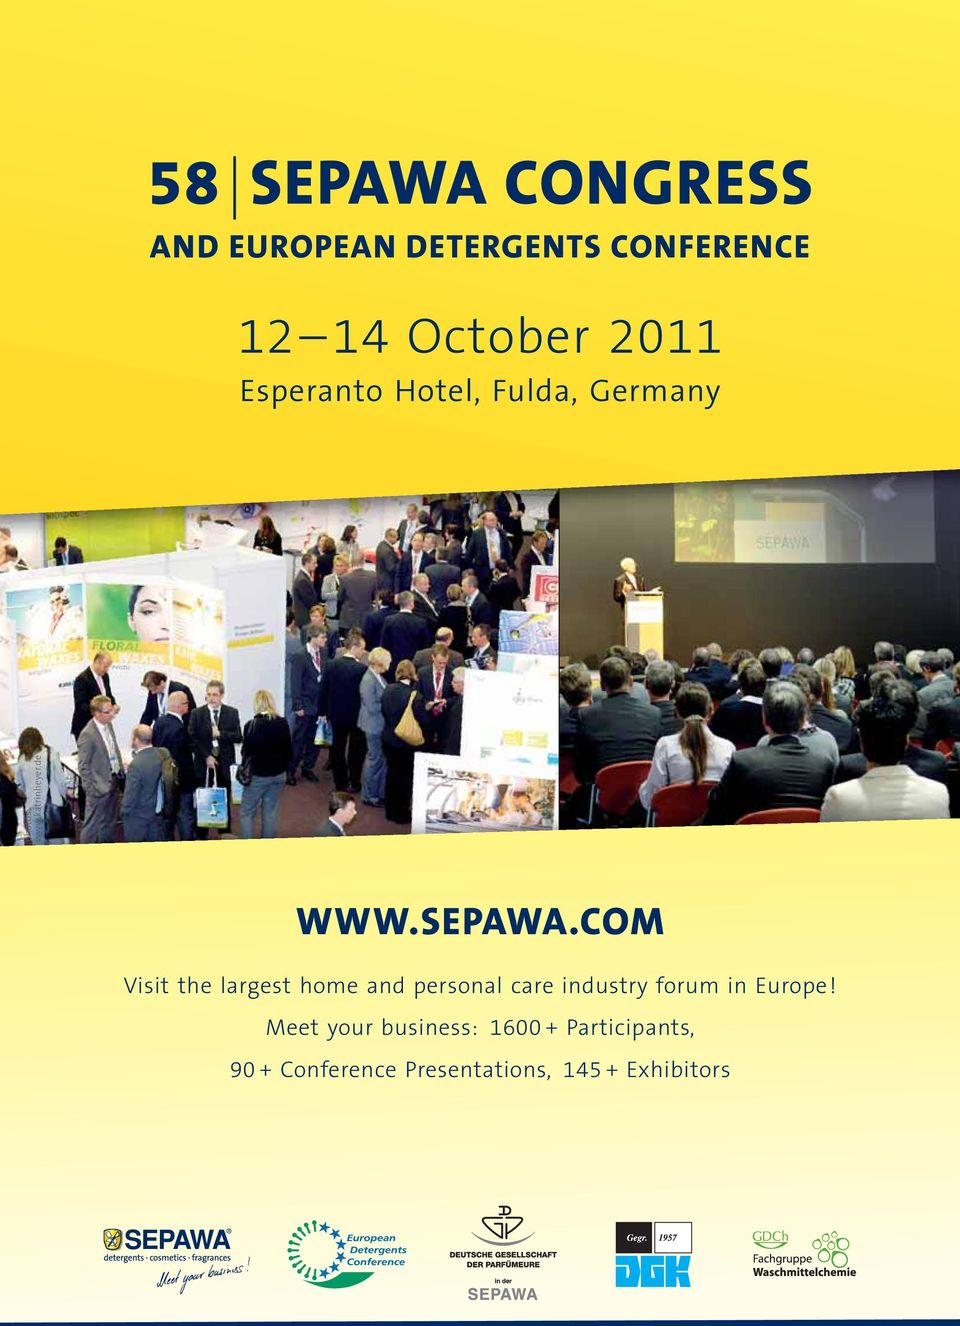 COM Visit the largest home and personal care industry forum in Europe!